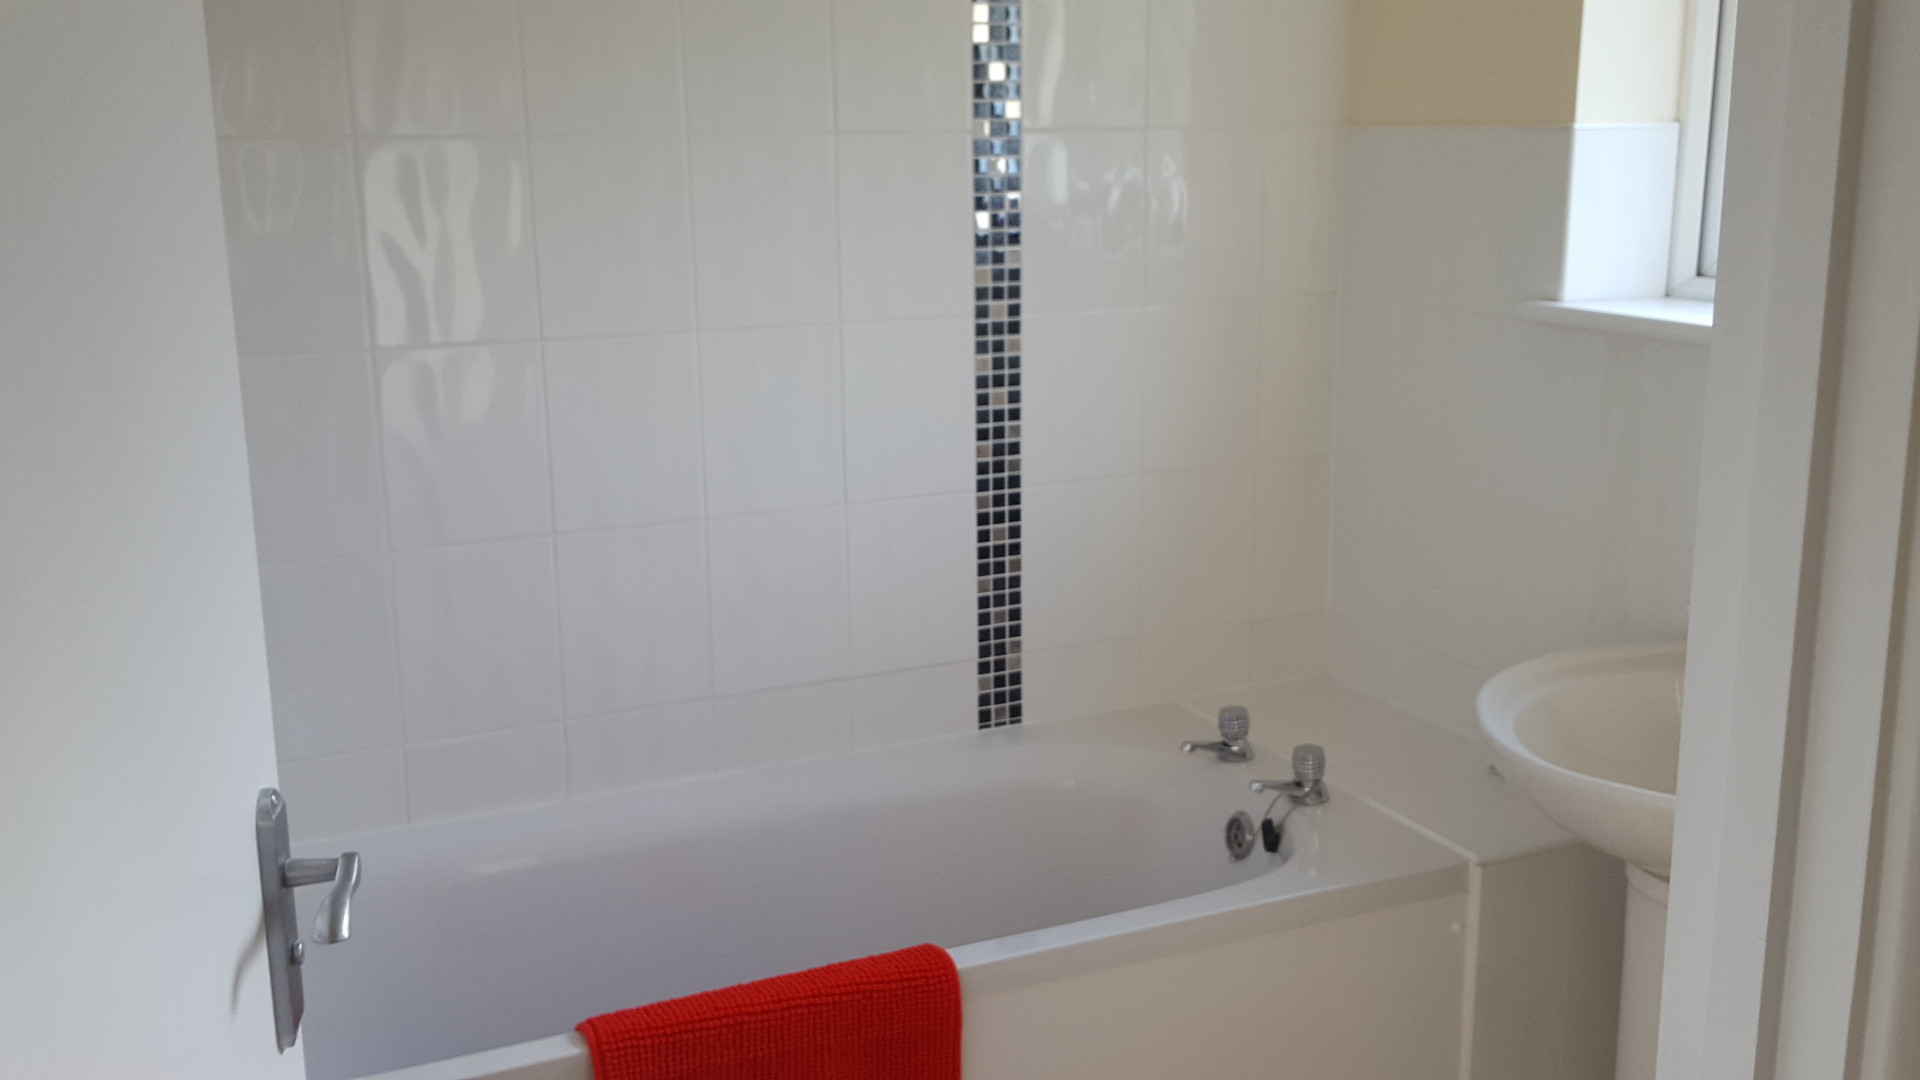 lovely-newly-refurbished-double-rooms-shared-house-redditch-worcestershire-a9f8bc6baeda27299c94d2afa248f14a.jpg